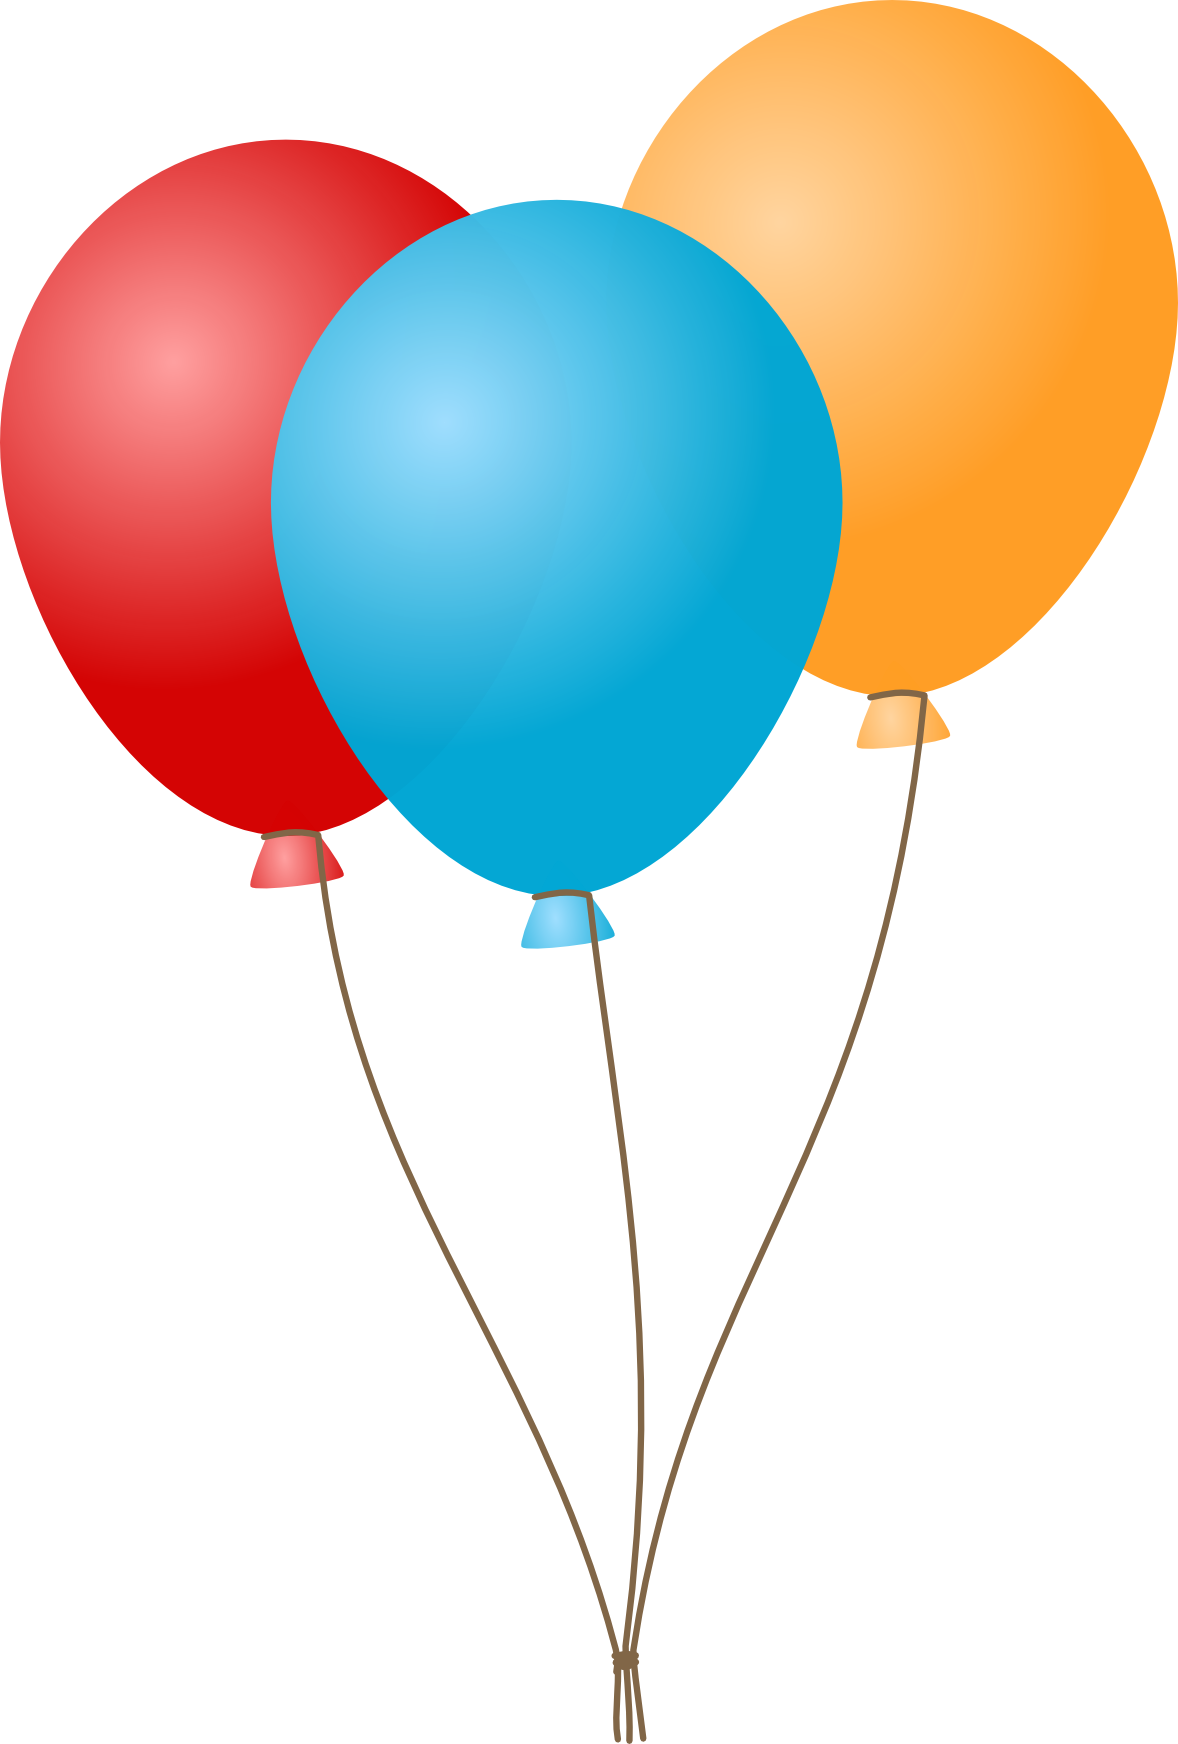 balloon PNG image - Balloon HD PNG